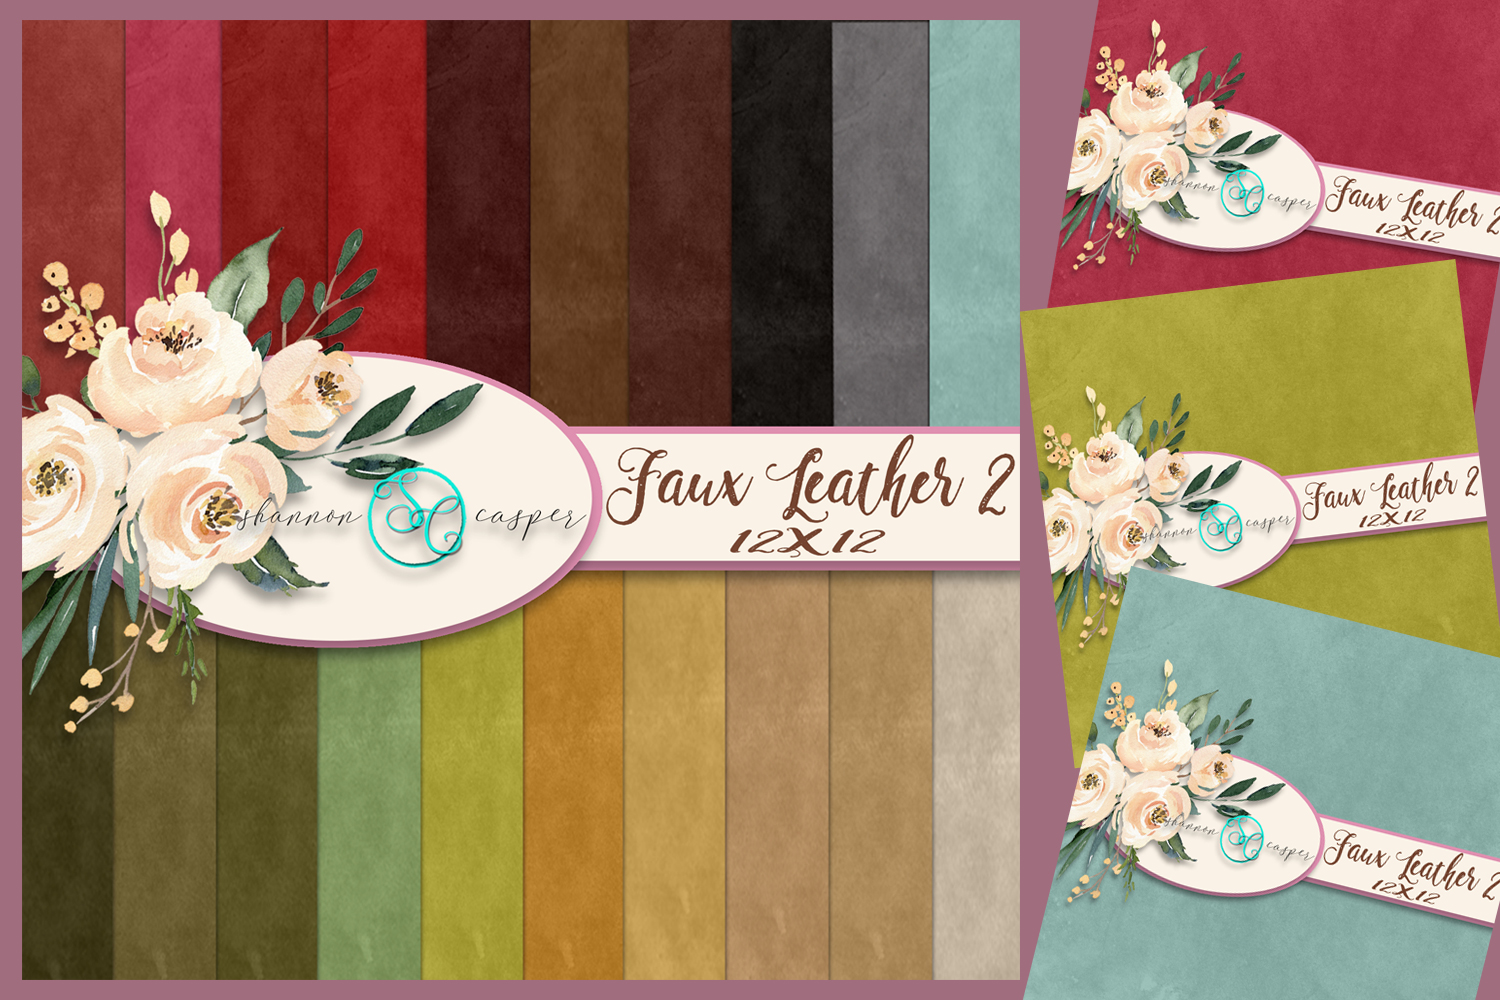 20 Faux Leather Look Scrapbook Digital Paper 12 X 12 example image 1